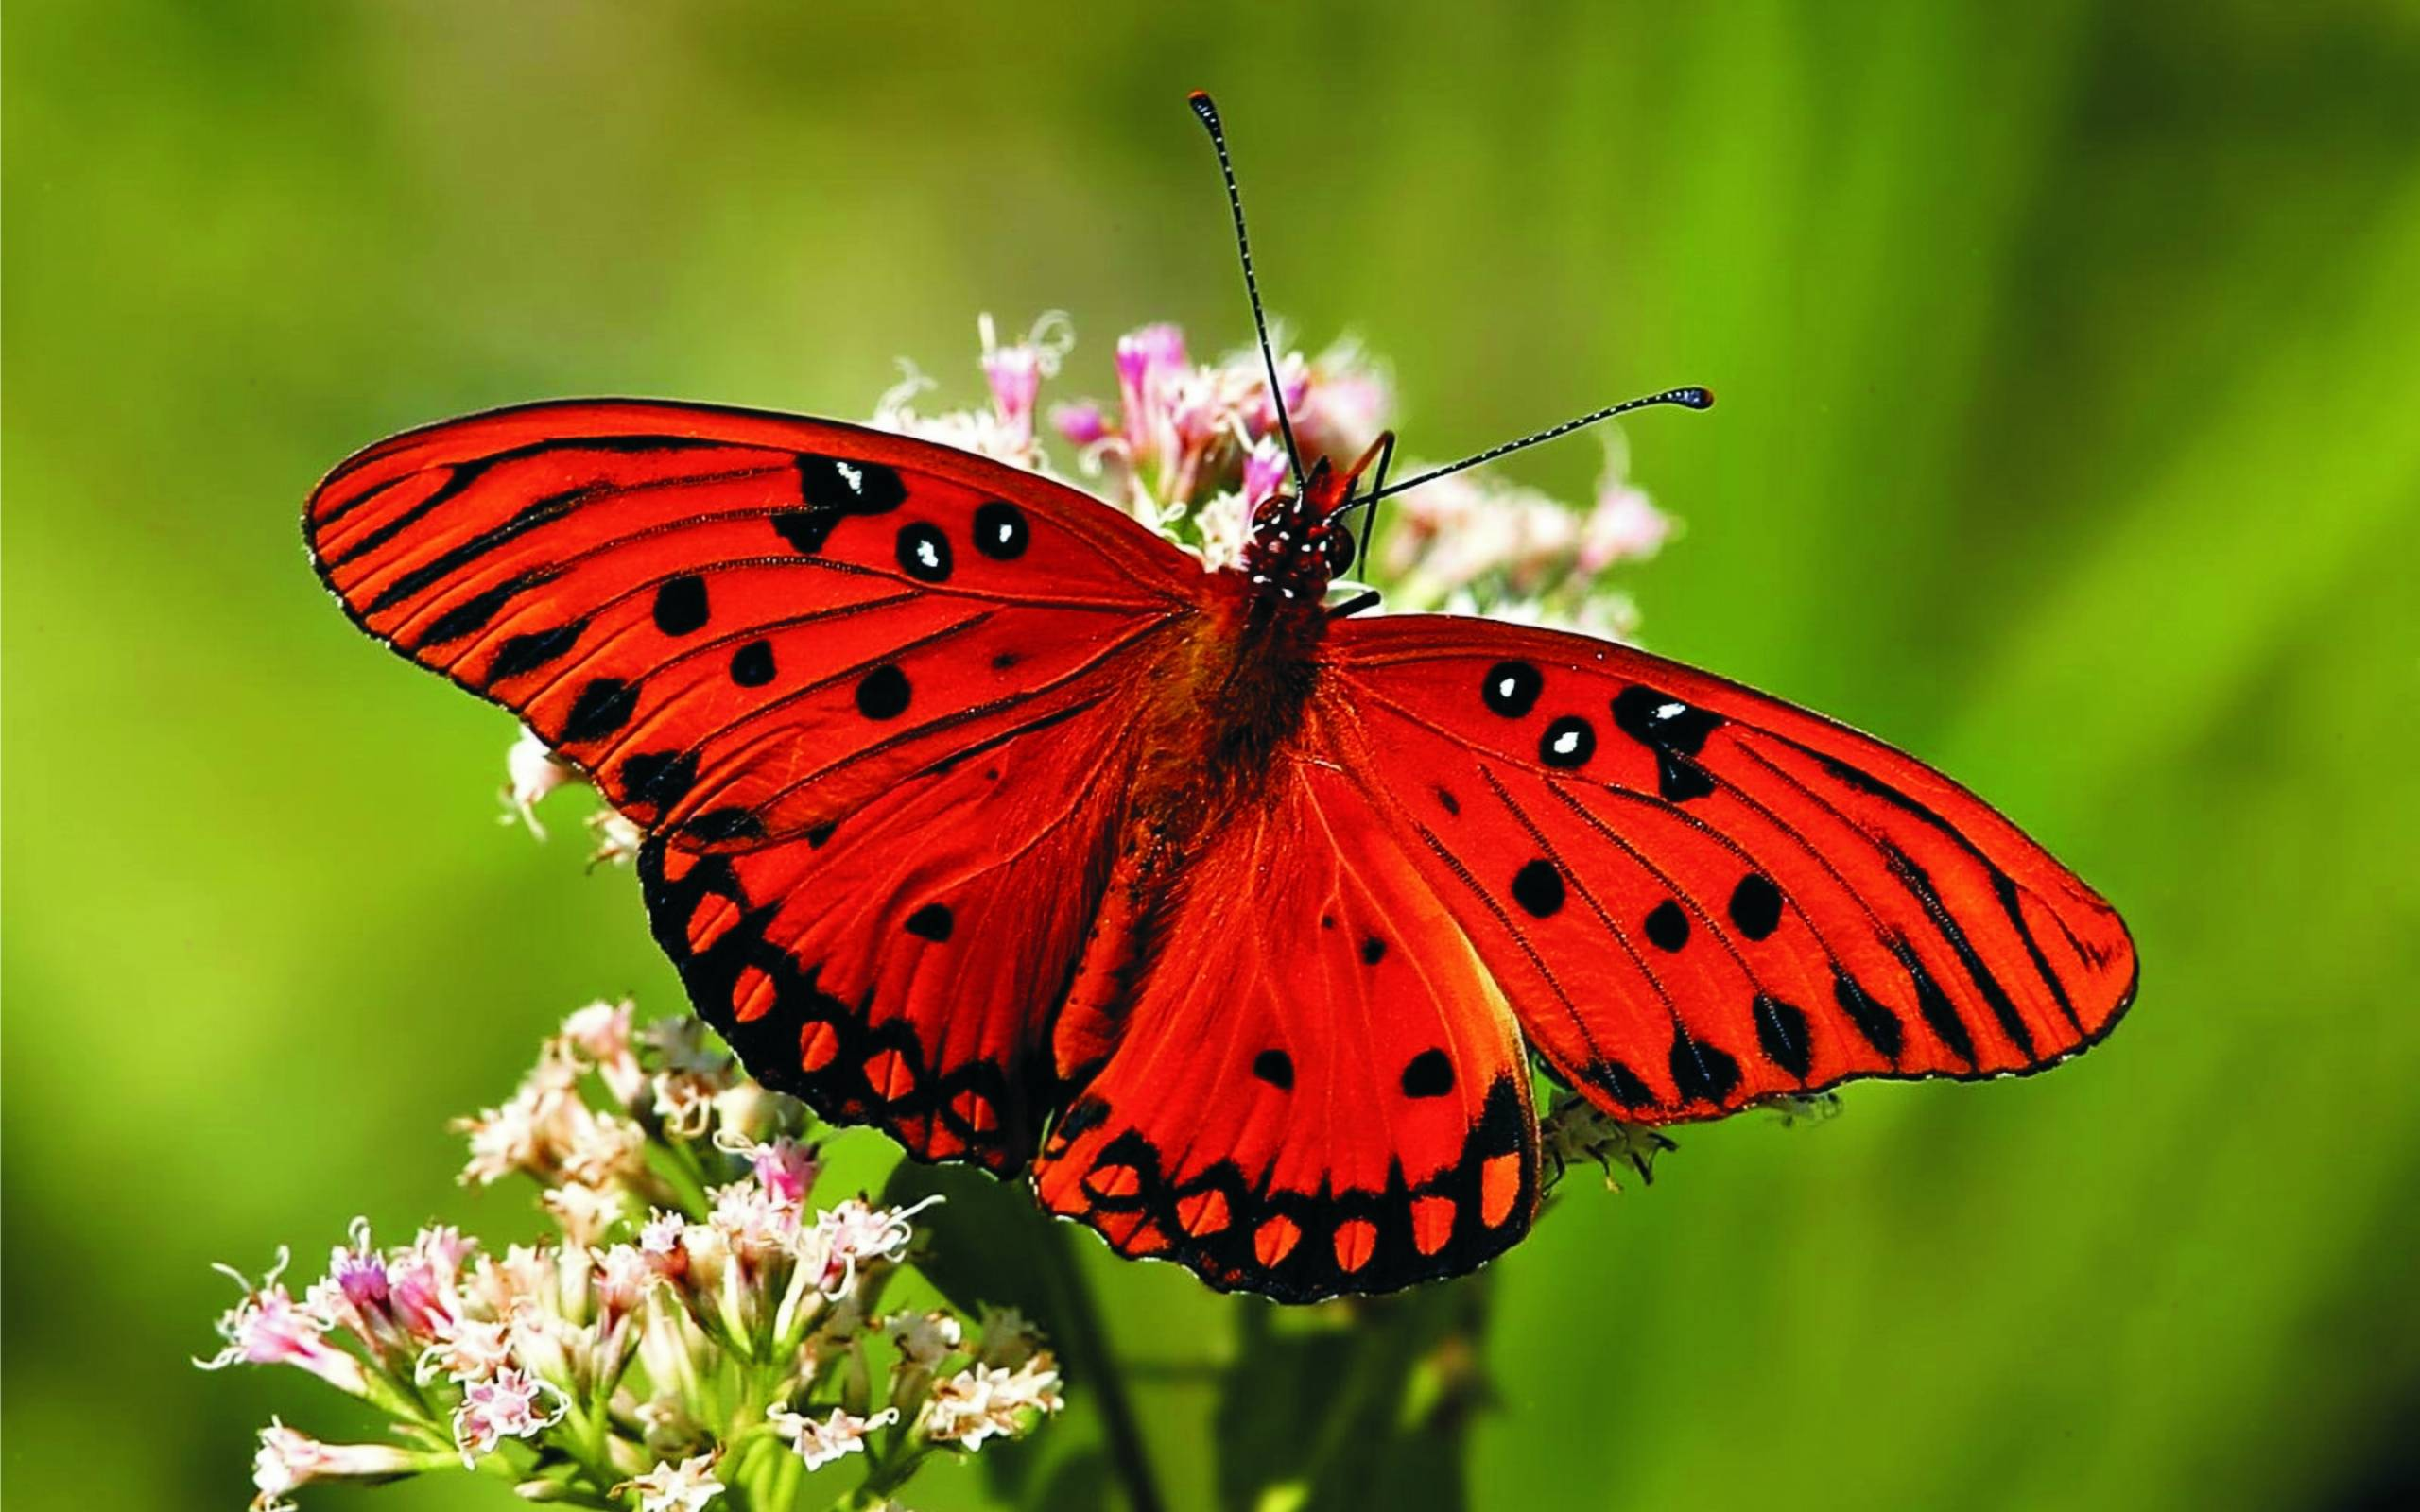 For humans seeing butterflies fluttering around with their beautiful brightly colored wings is a joyful sight. However not for their natural predators like ...